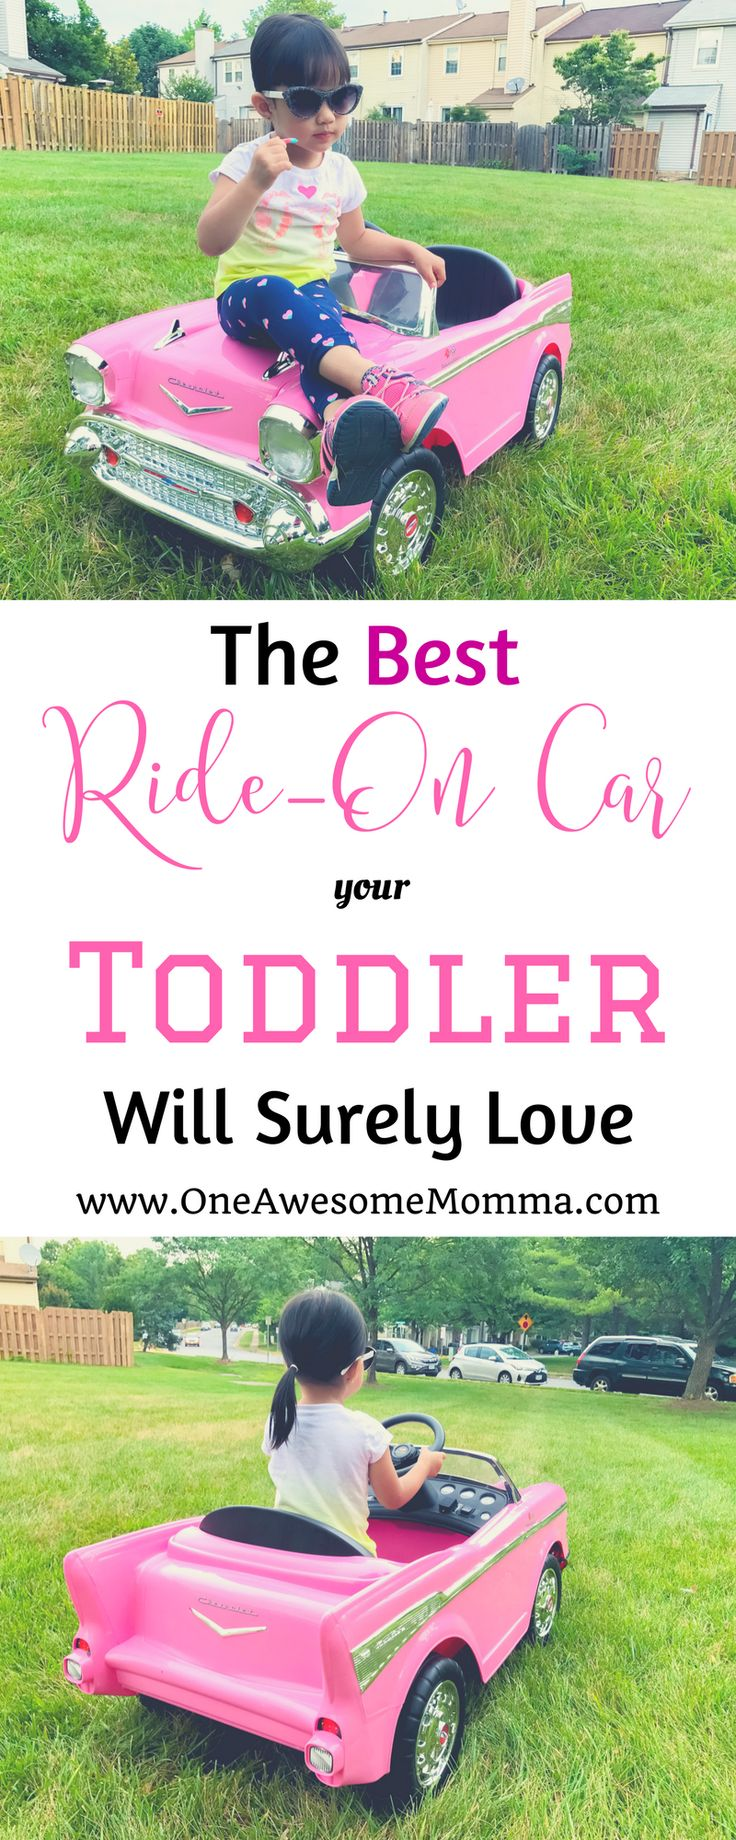 Are you looking for a toddler ride on car for your little one? This post has everything you need to find out about the best ride on car from @buybuybaby your toddler will surely love. It is the perfect birthday gift for toddler! | ride on toys | ride on toys for toddlers | ride on car | ride on cars for toddlers | ride on cars for kids | ride on cars toys | toddler ride on toys | toddler ride on cars | toddler ride on toys car | birthday gifts | birthday gift ideas | birthday gifts for…